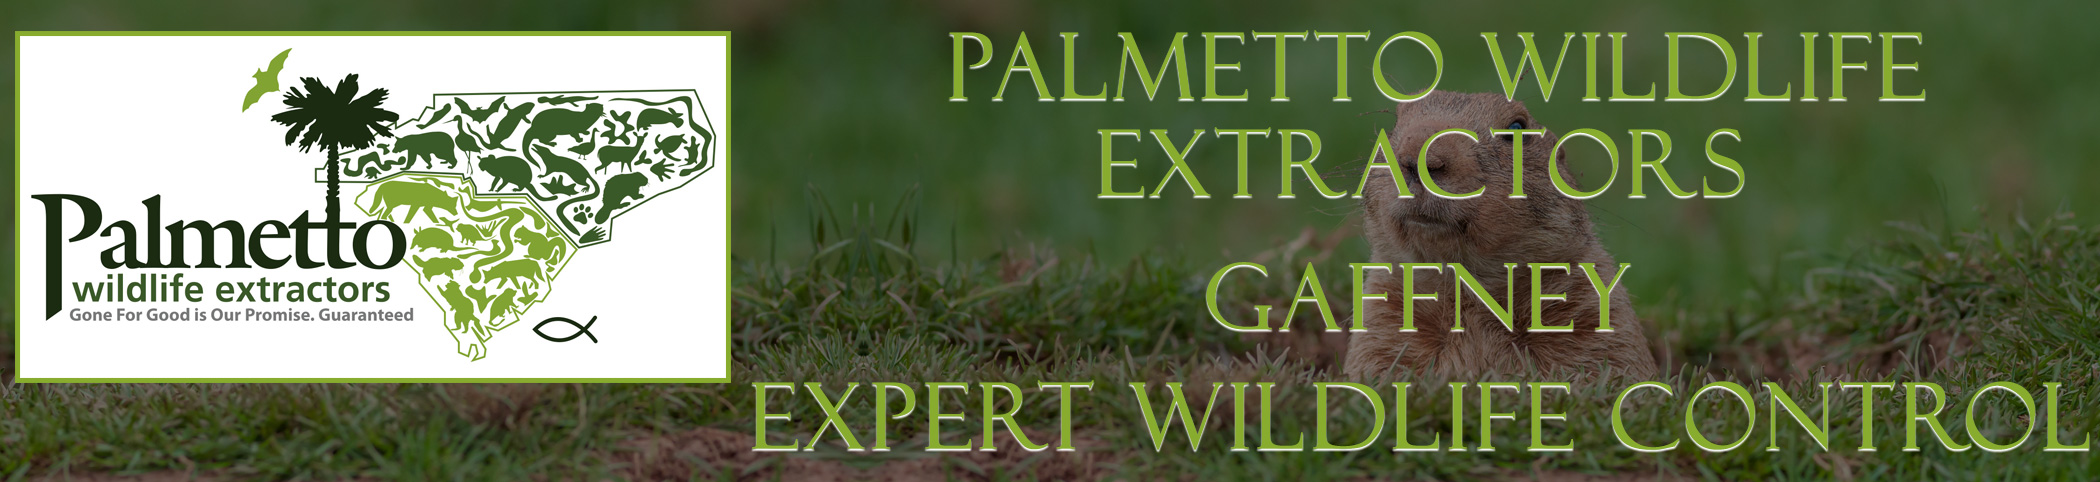 Palmetto Wildlife Extractors Gaffney south carolina header image